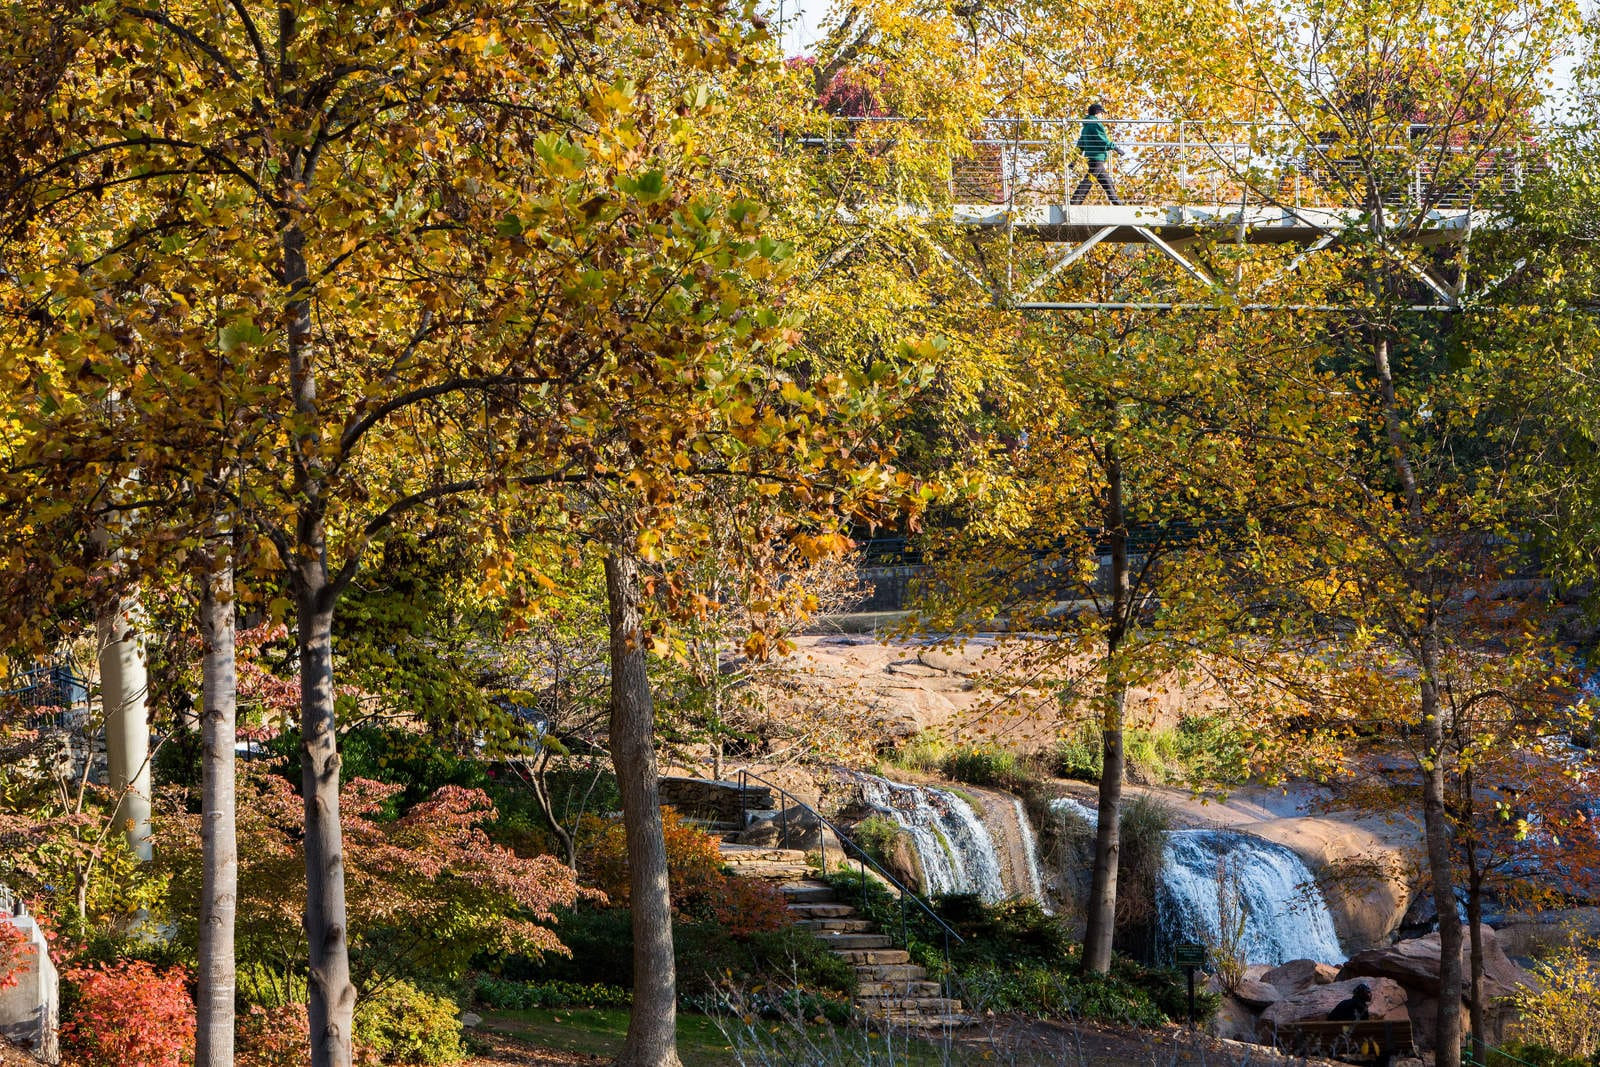 Falls Park on the Reedy River, Greenville SC